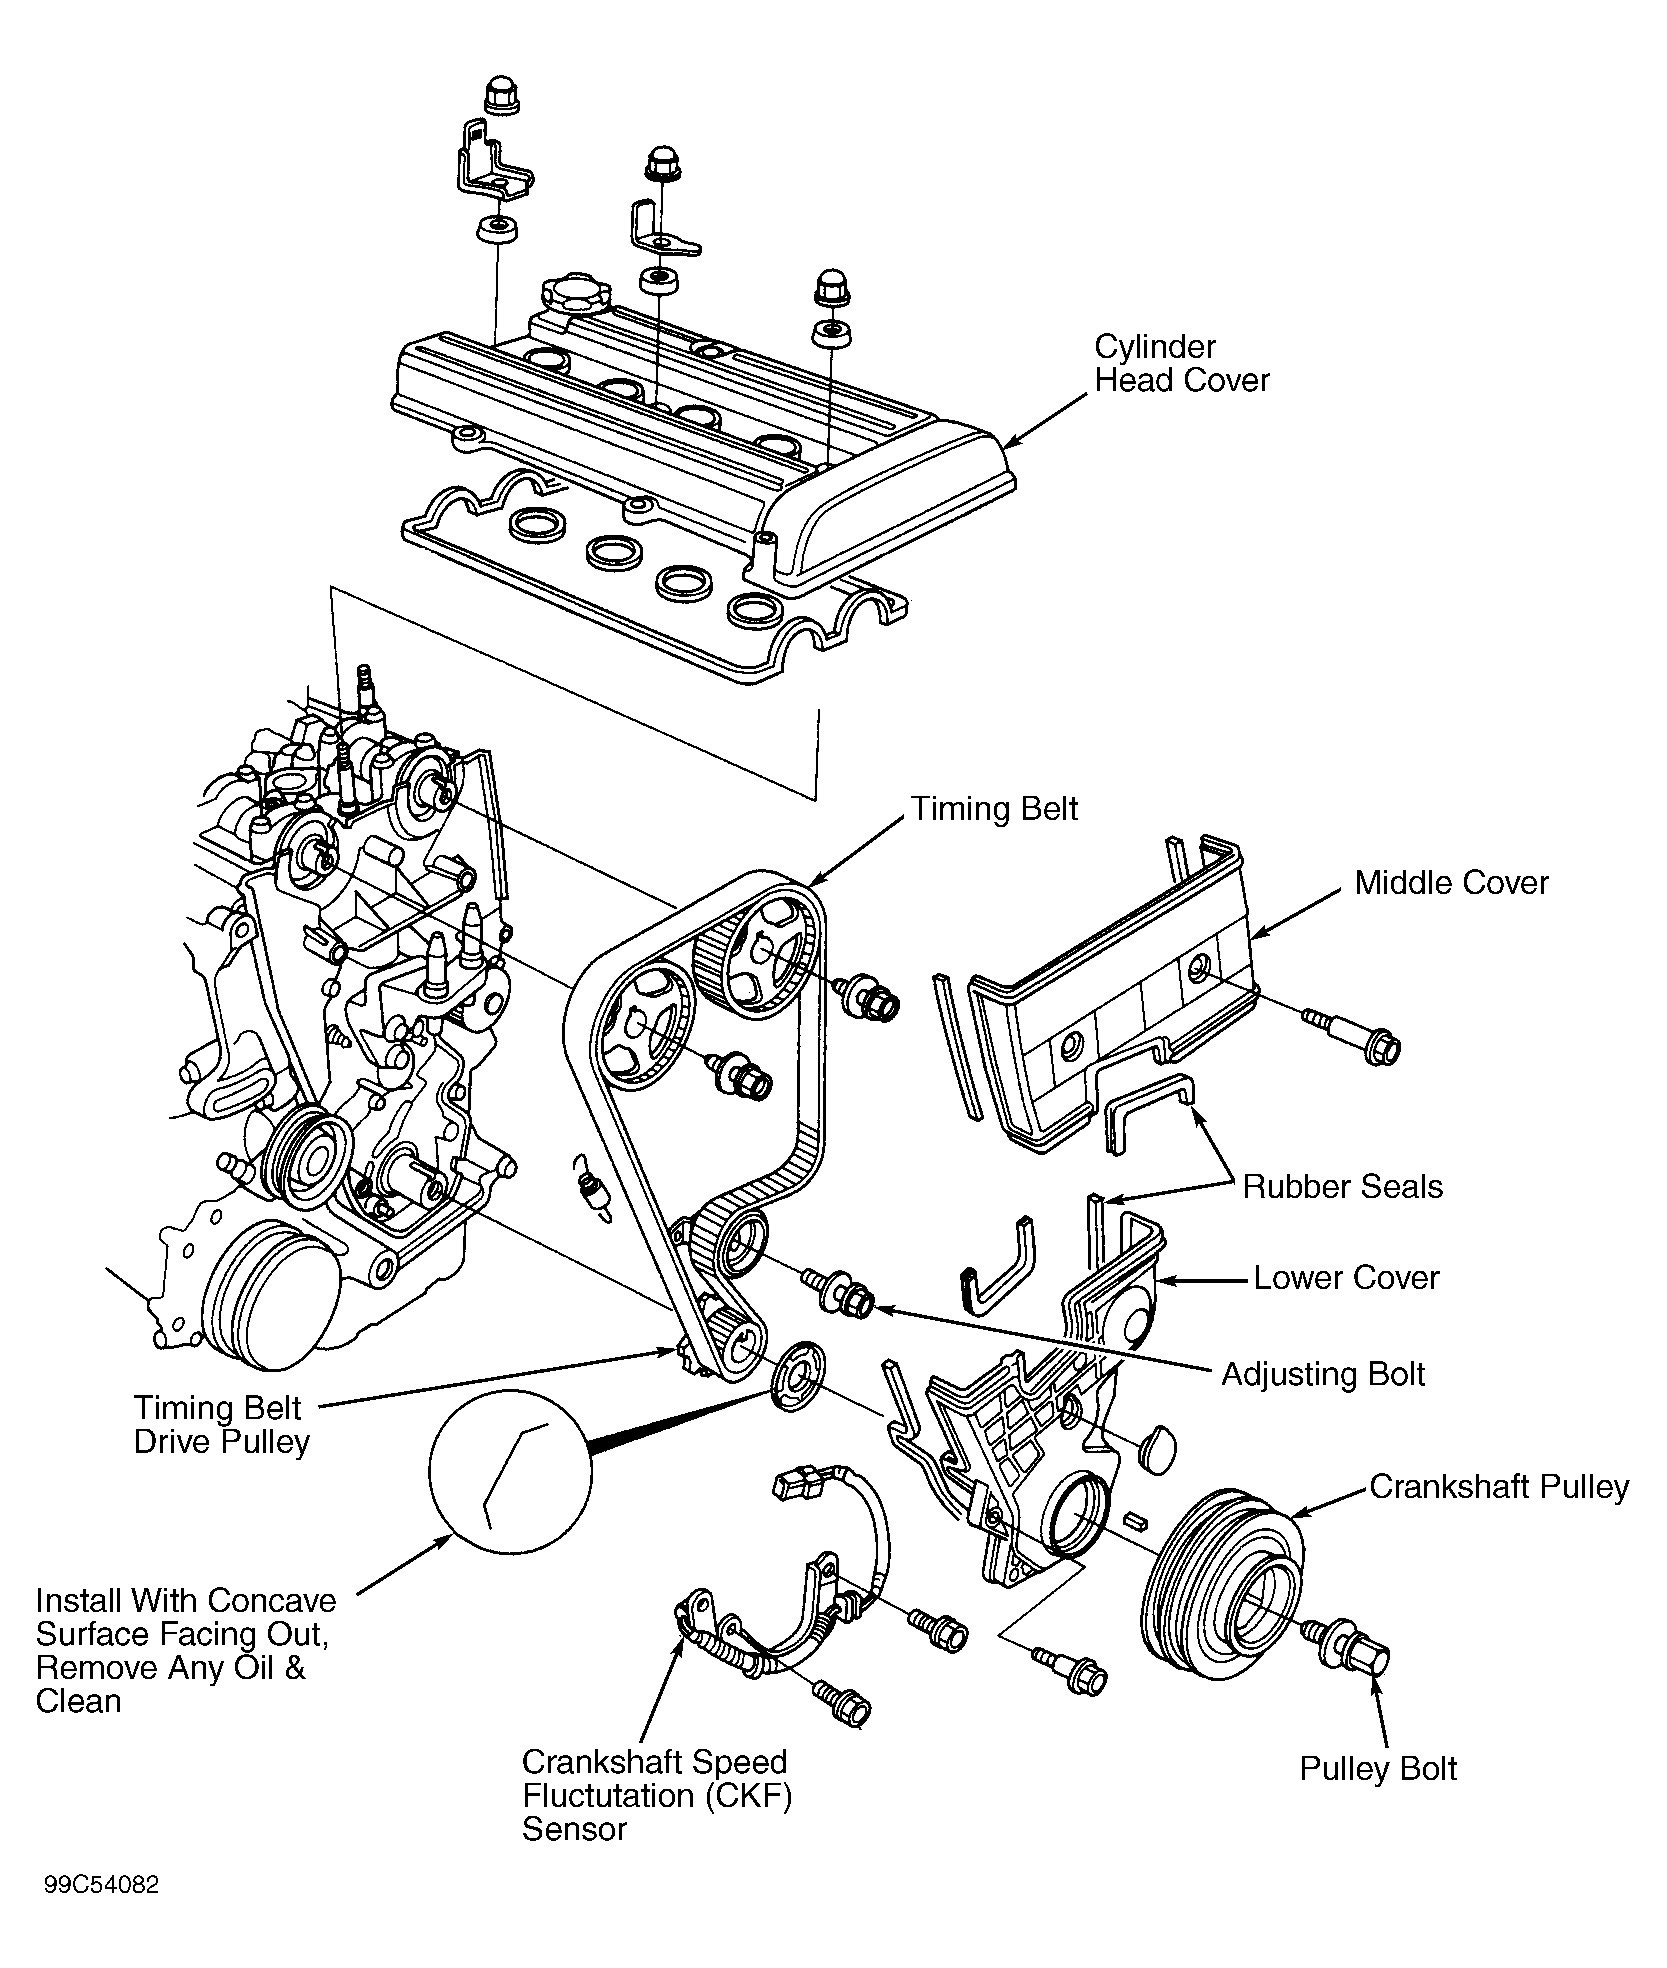 2000 Honda Crv Wiring Diagram - Wiring Diagram Example